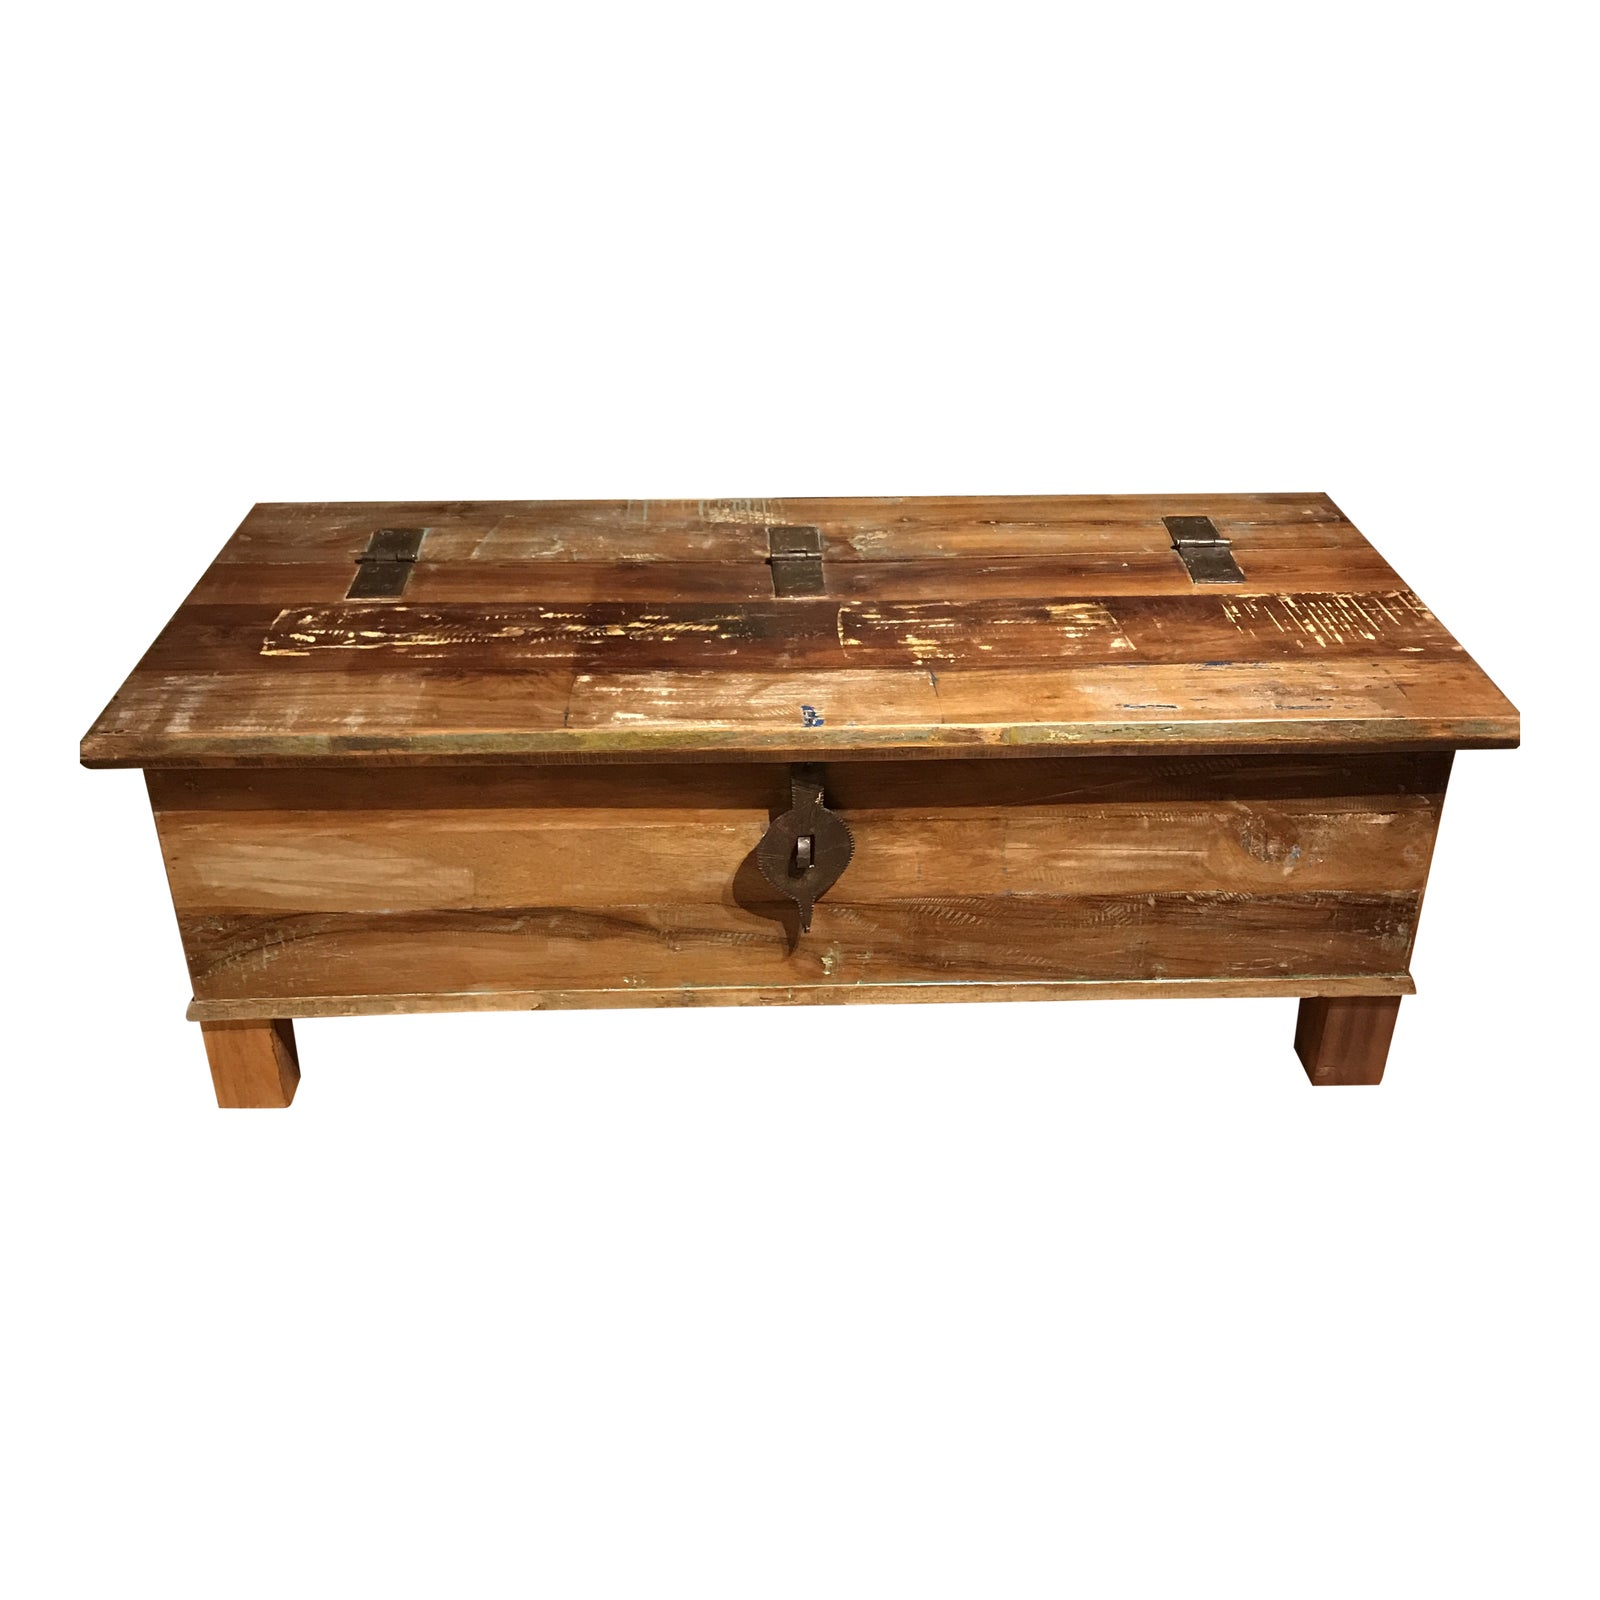 Excellent Rustic Wood Metal Coffee Table With Storage Machost Co Dining Chair Design Ideas Machostcouk